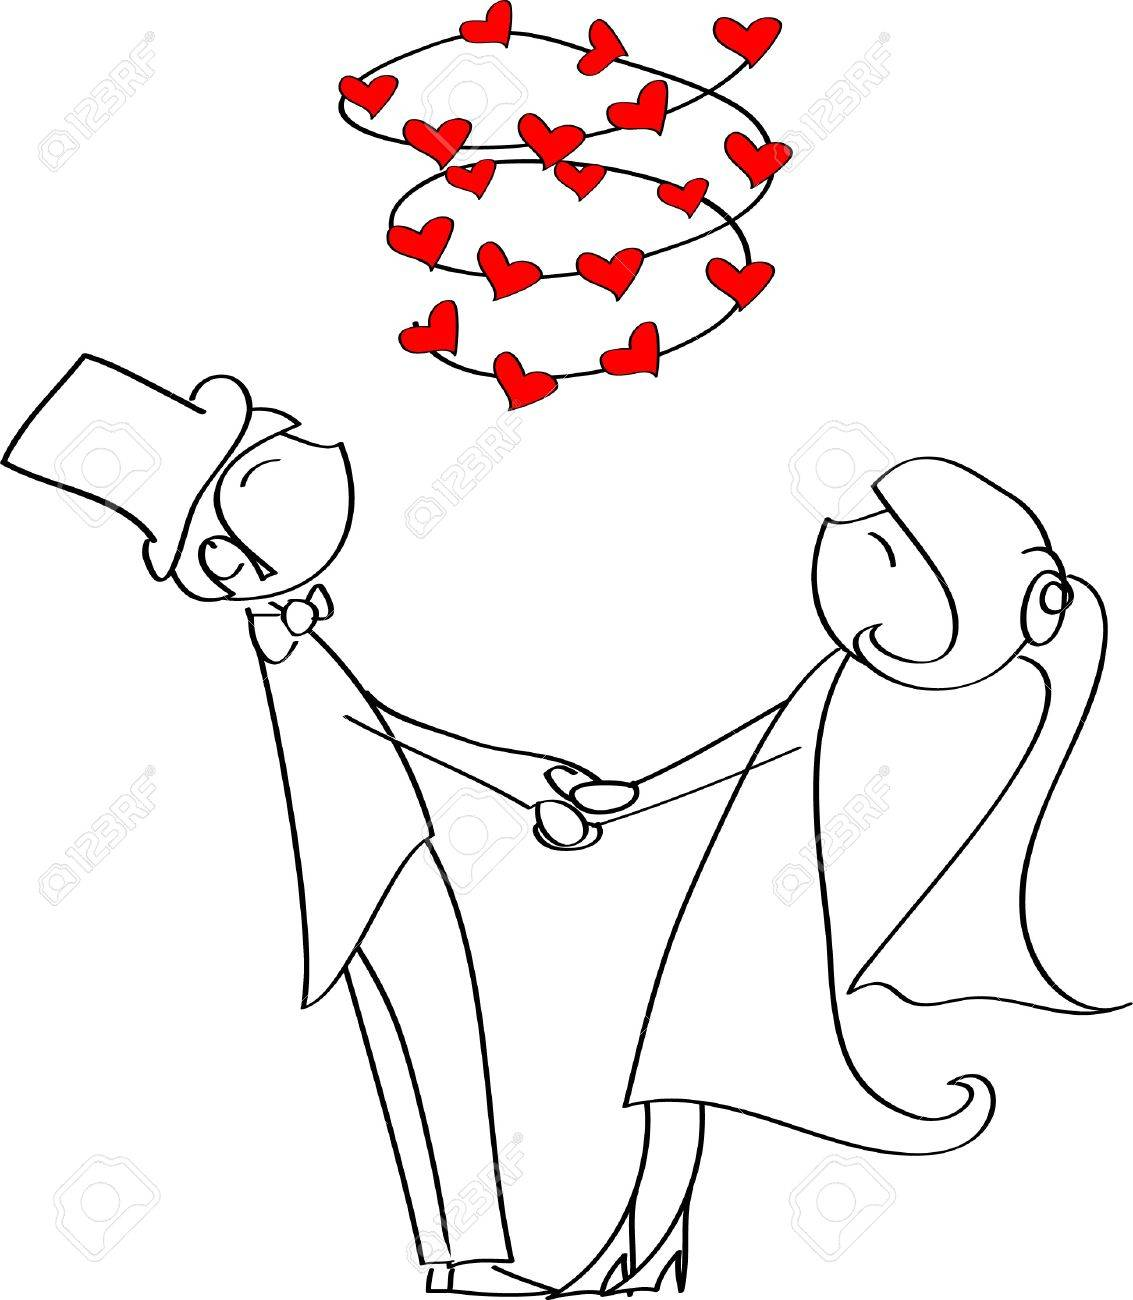 love the bride and groom circle holding hands Stock Vector - 11325628